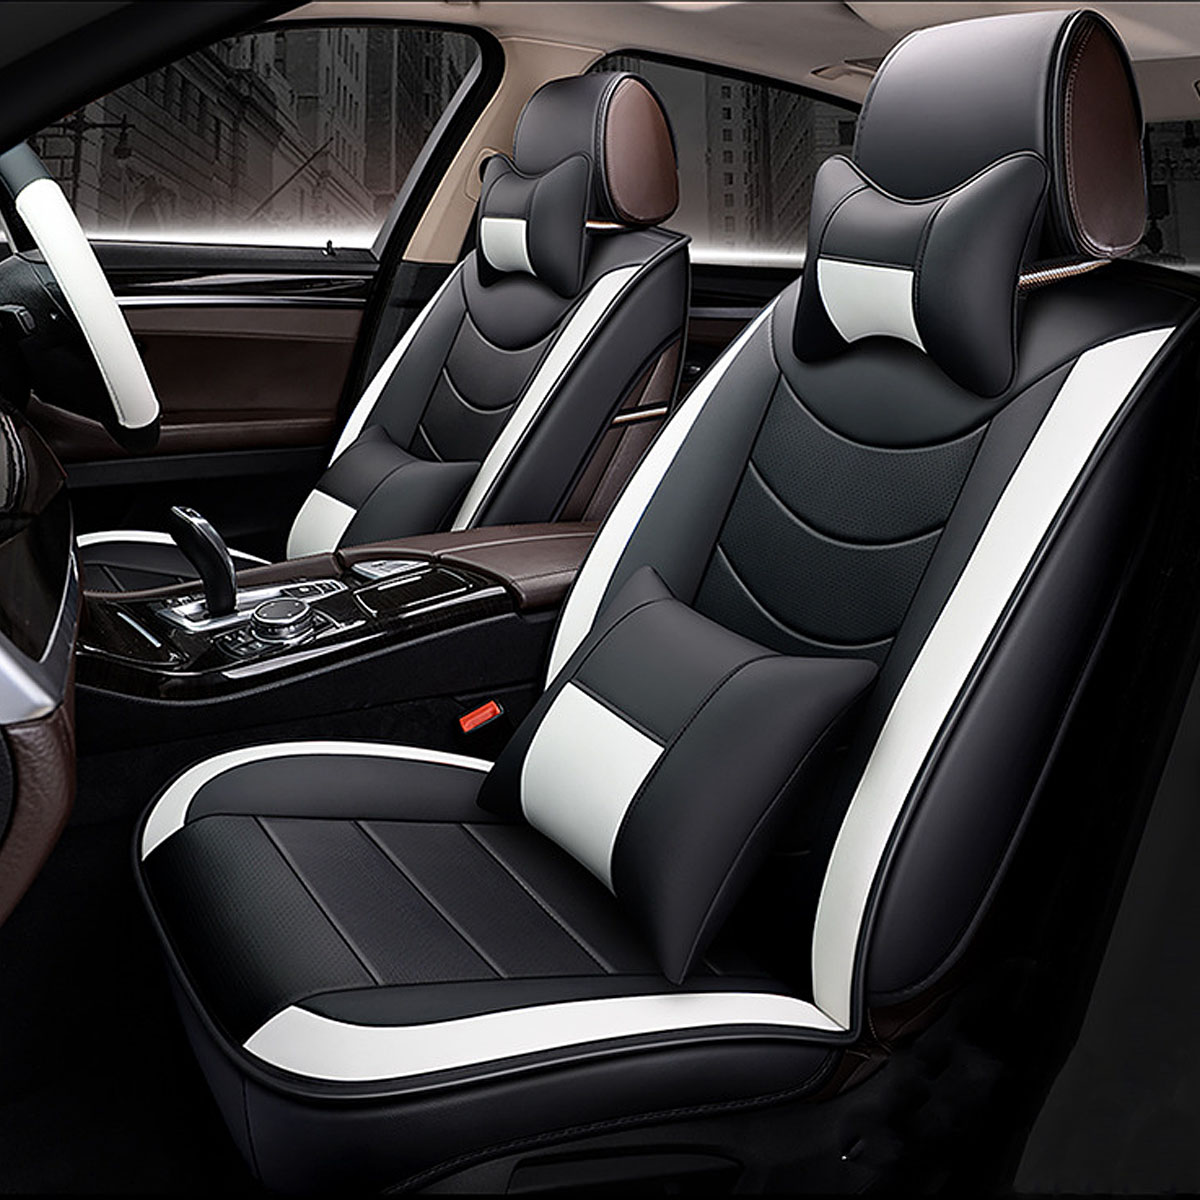 8Pcs PU Leather Car Full Surround Seat Cover Cushion Protector Set Universal for 5 Seats Car